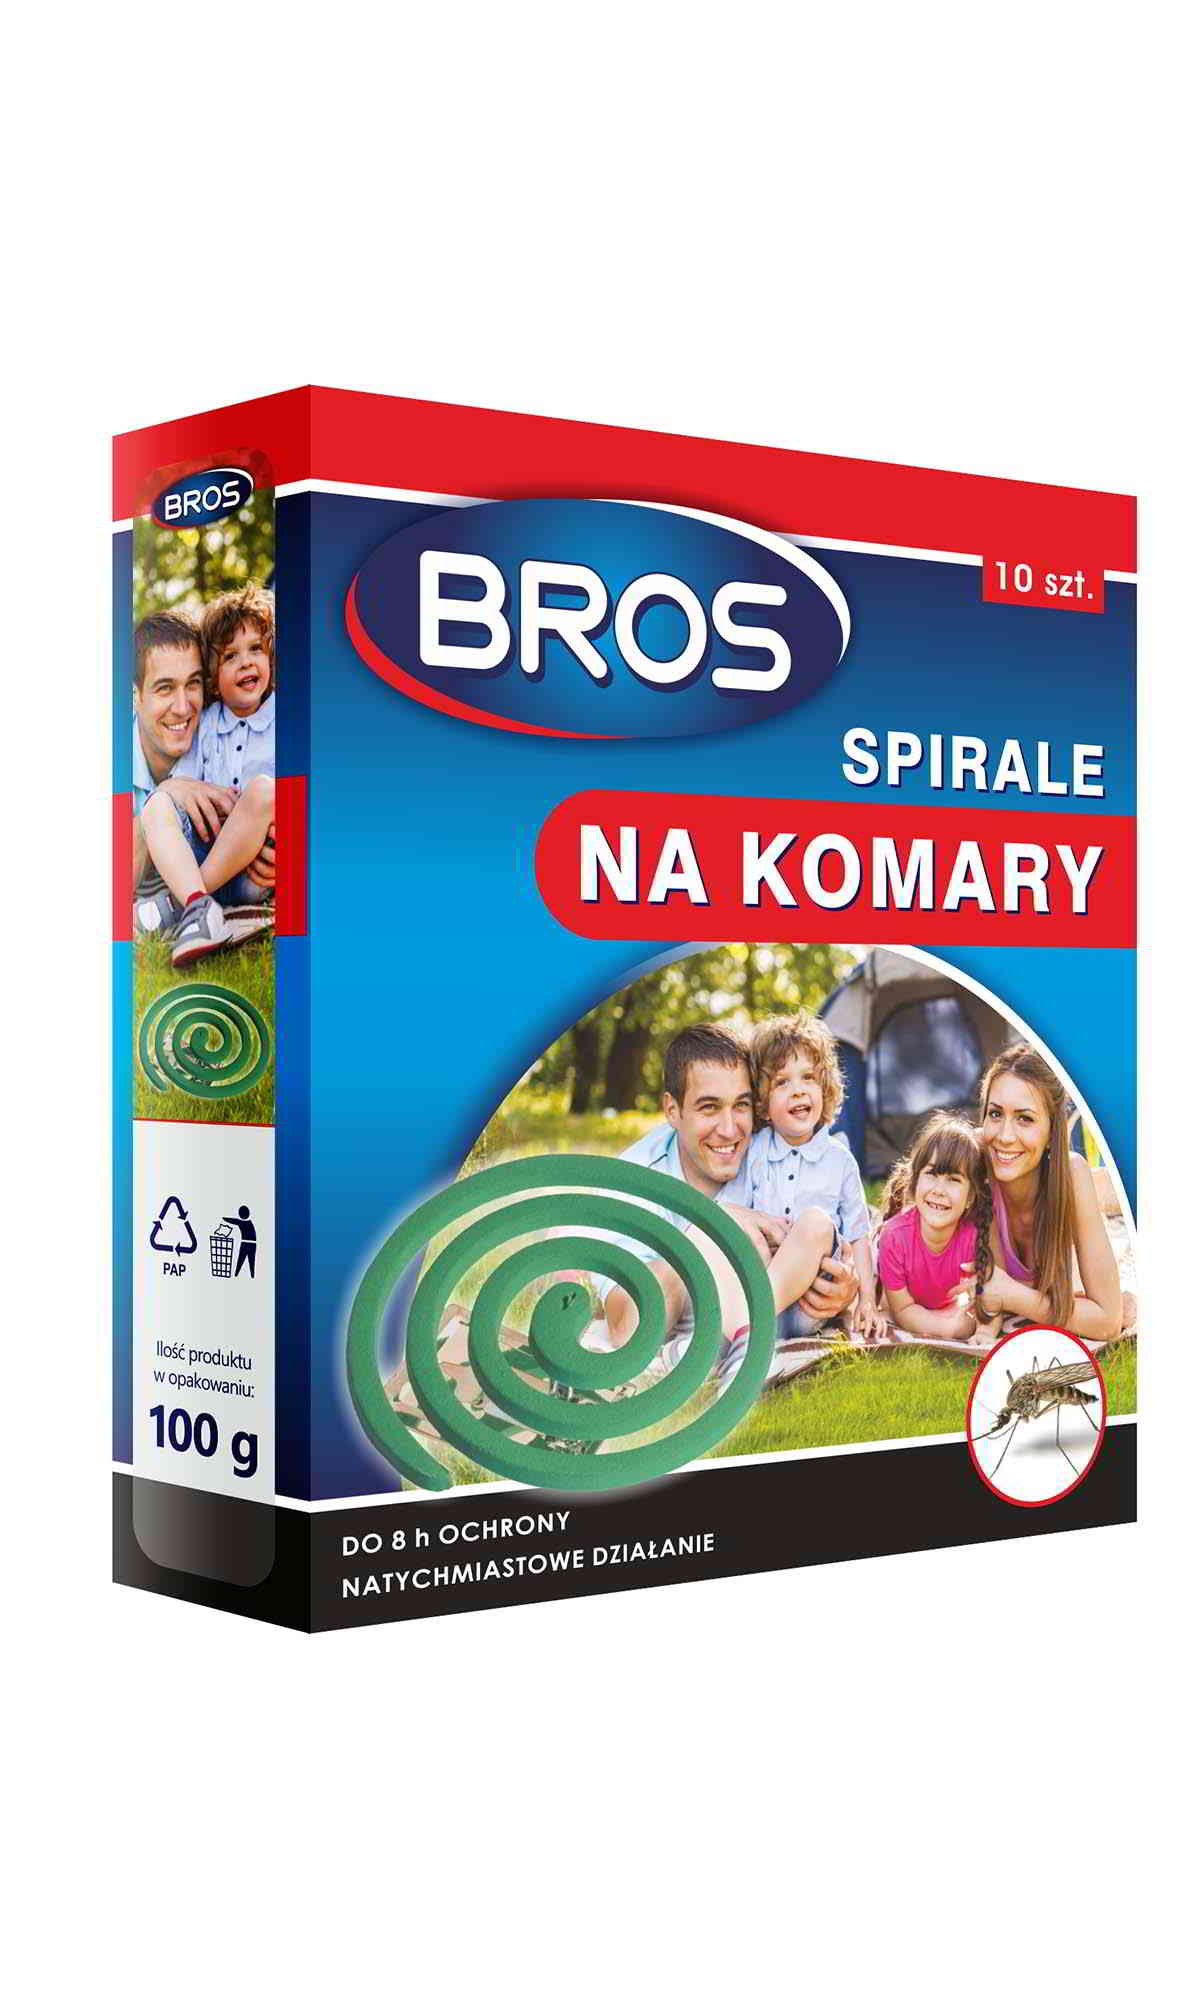 BROS spirala na komary